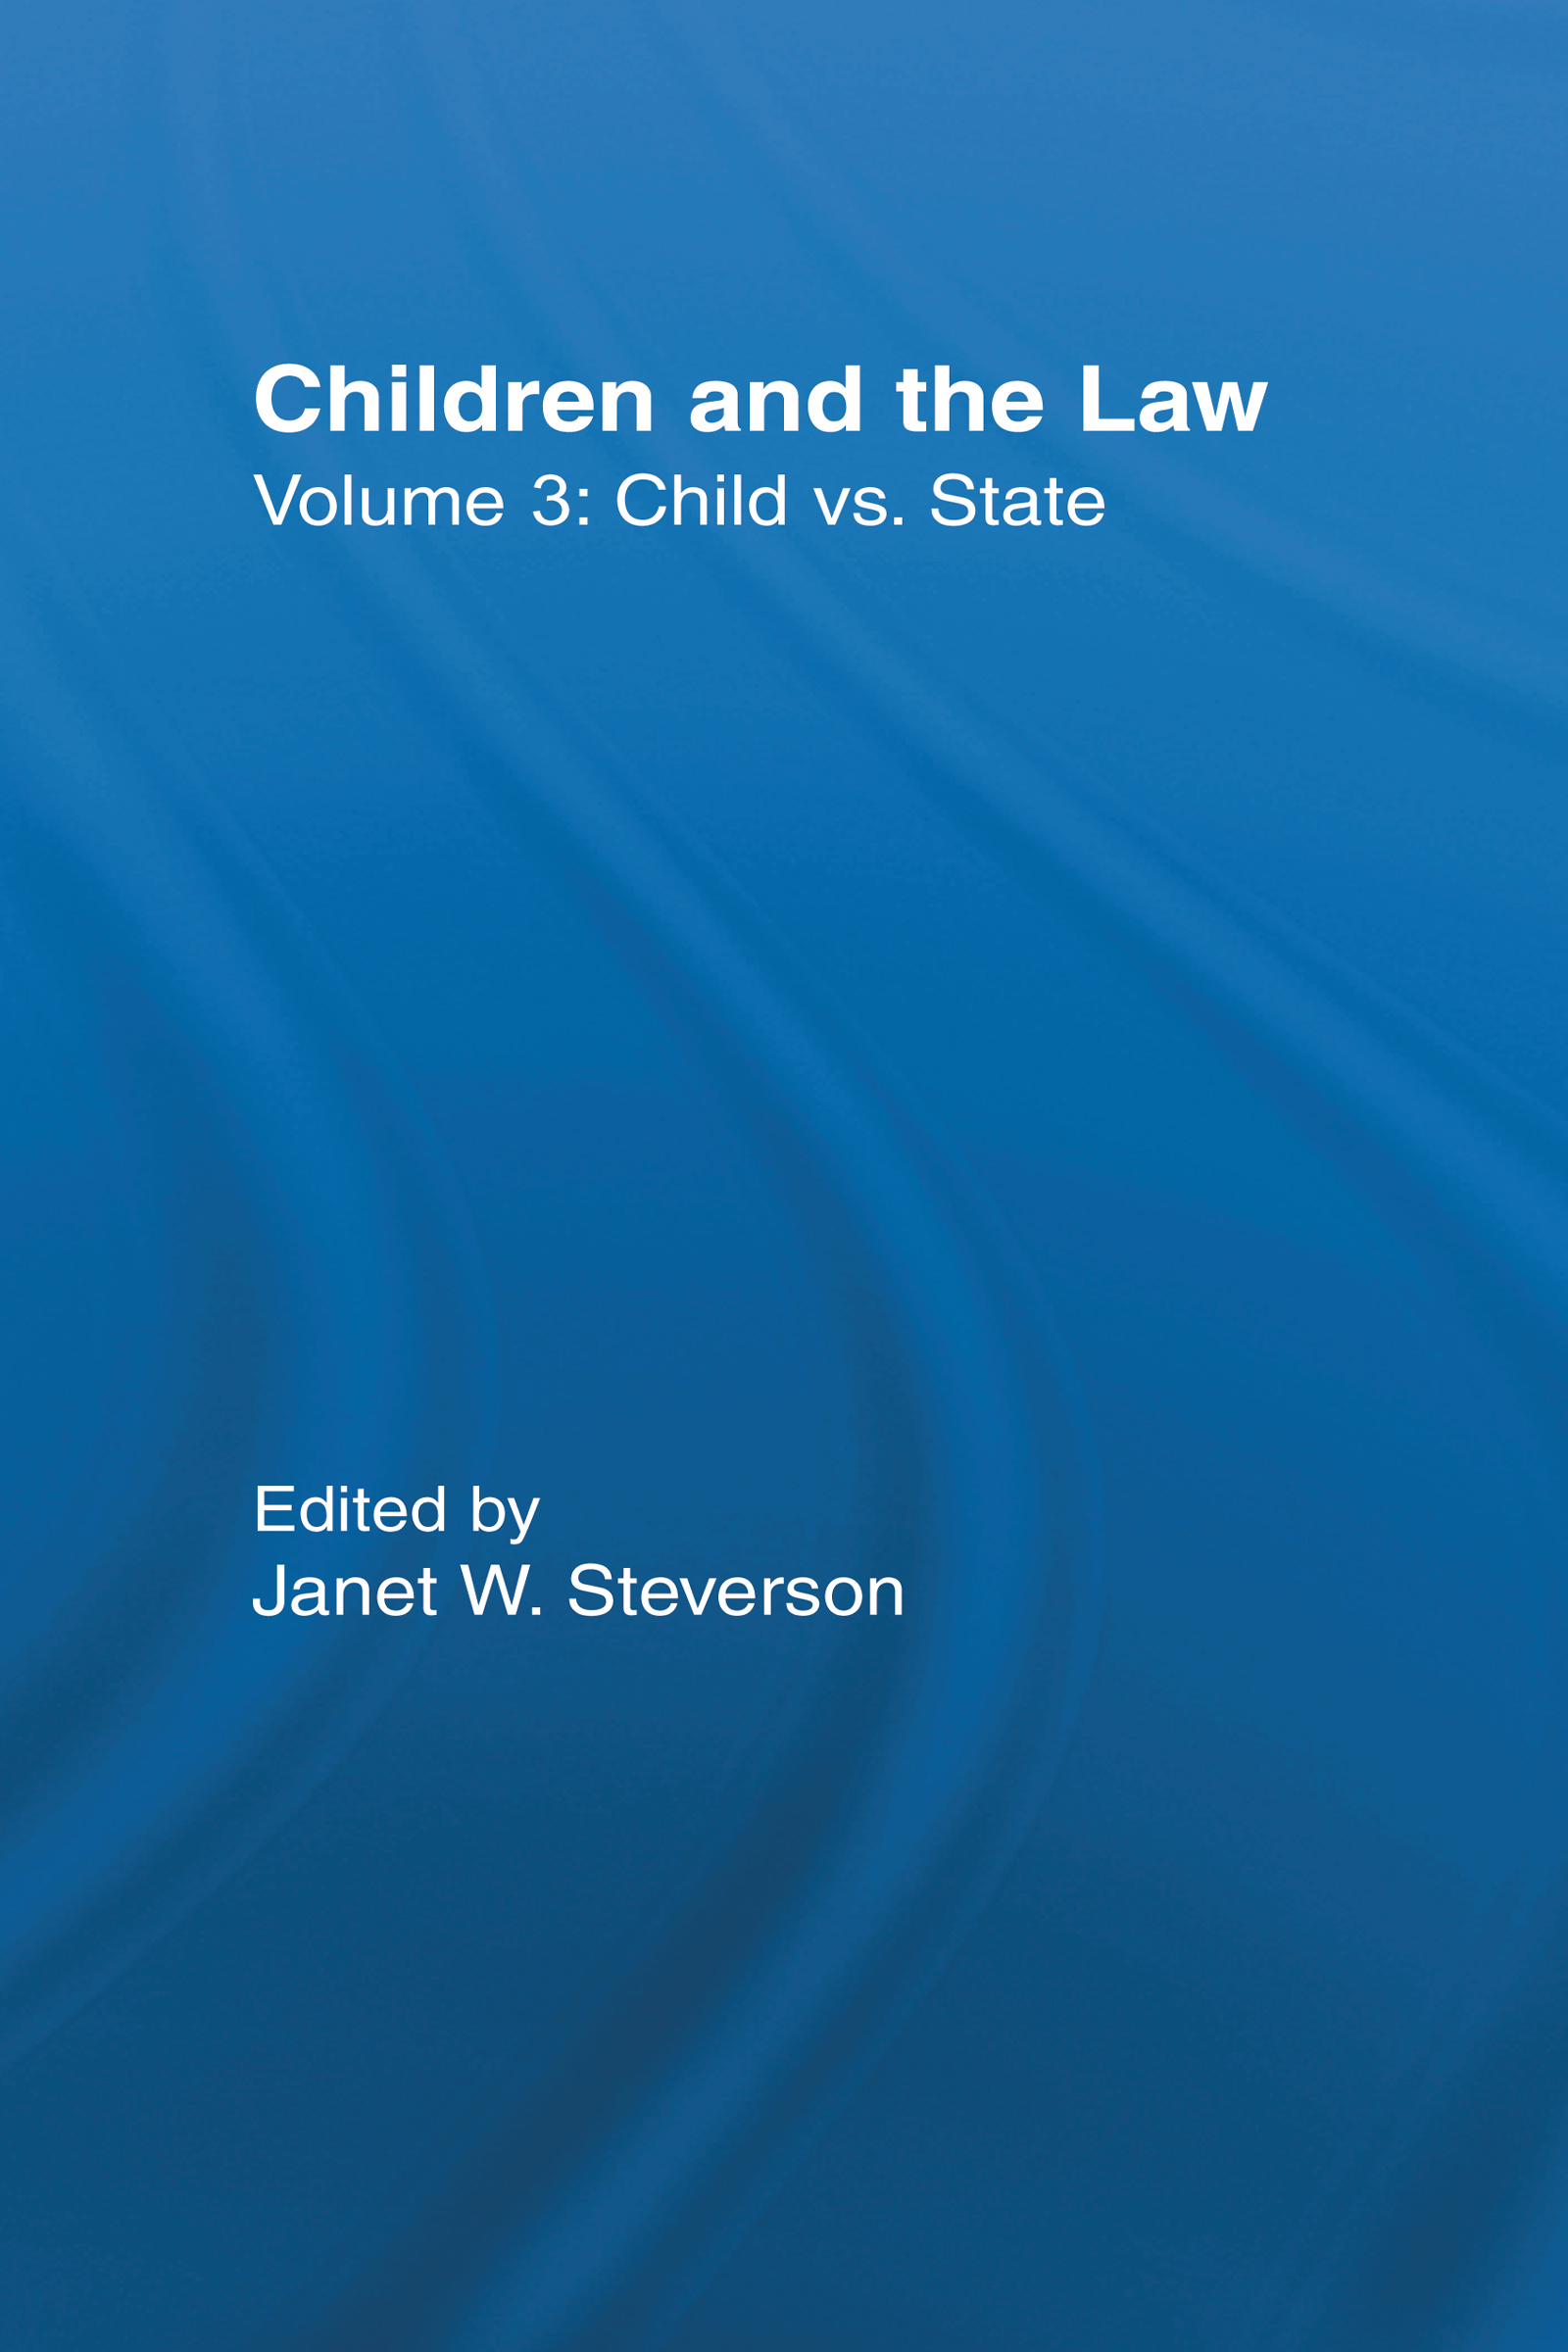 Child vs. State: Children and the Law book cover